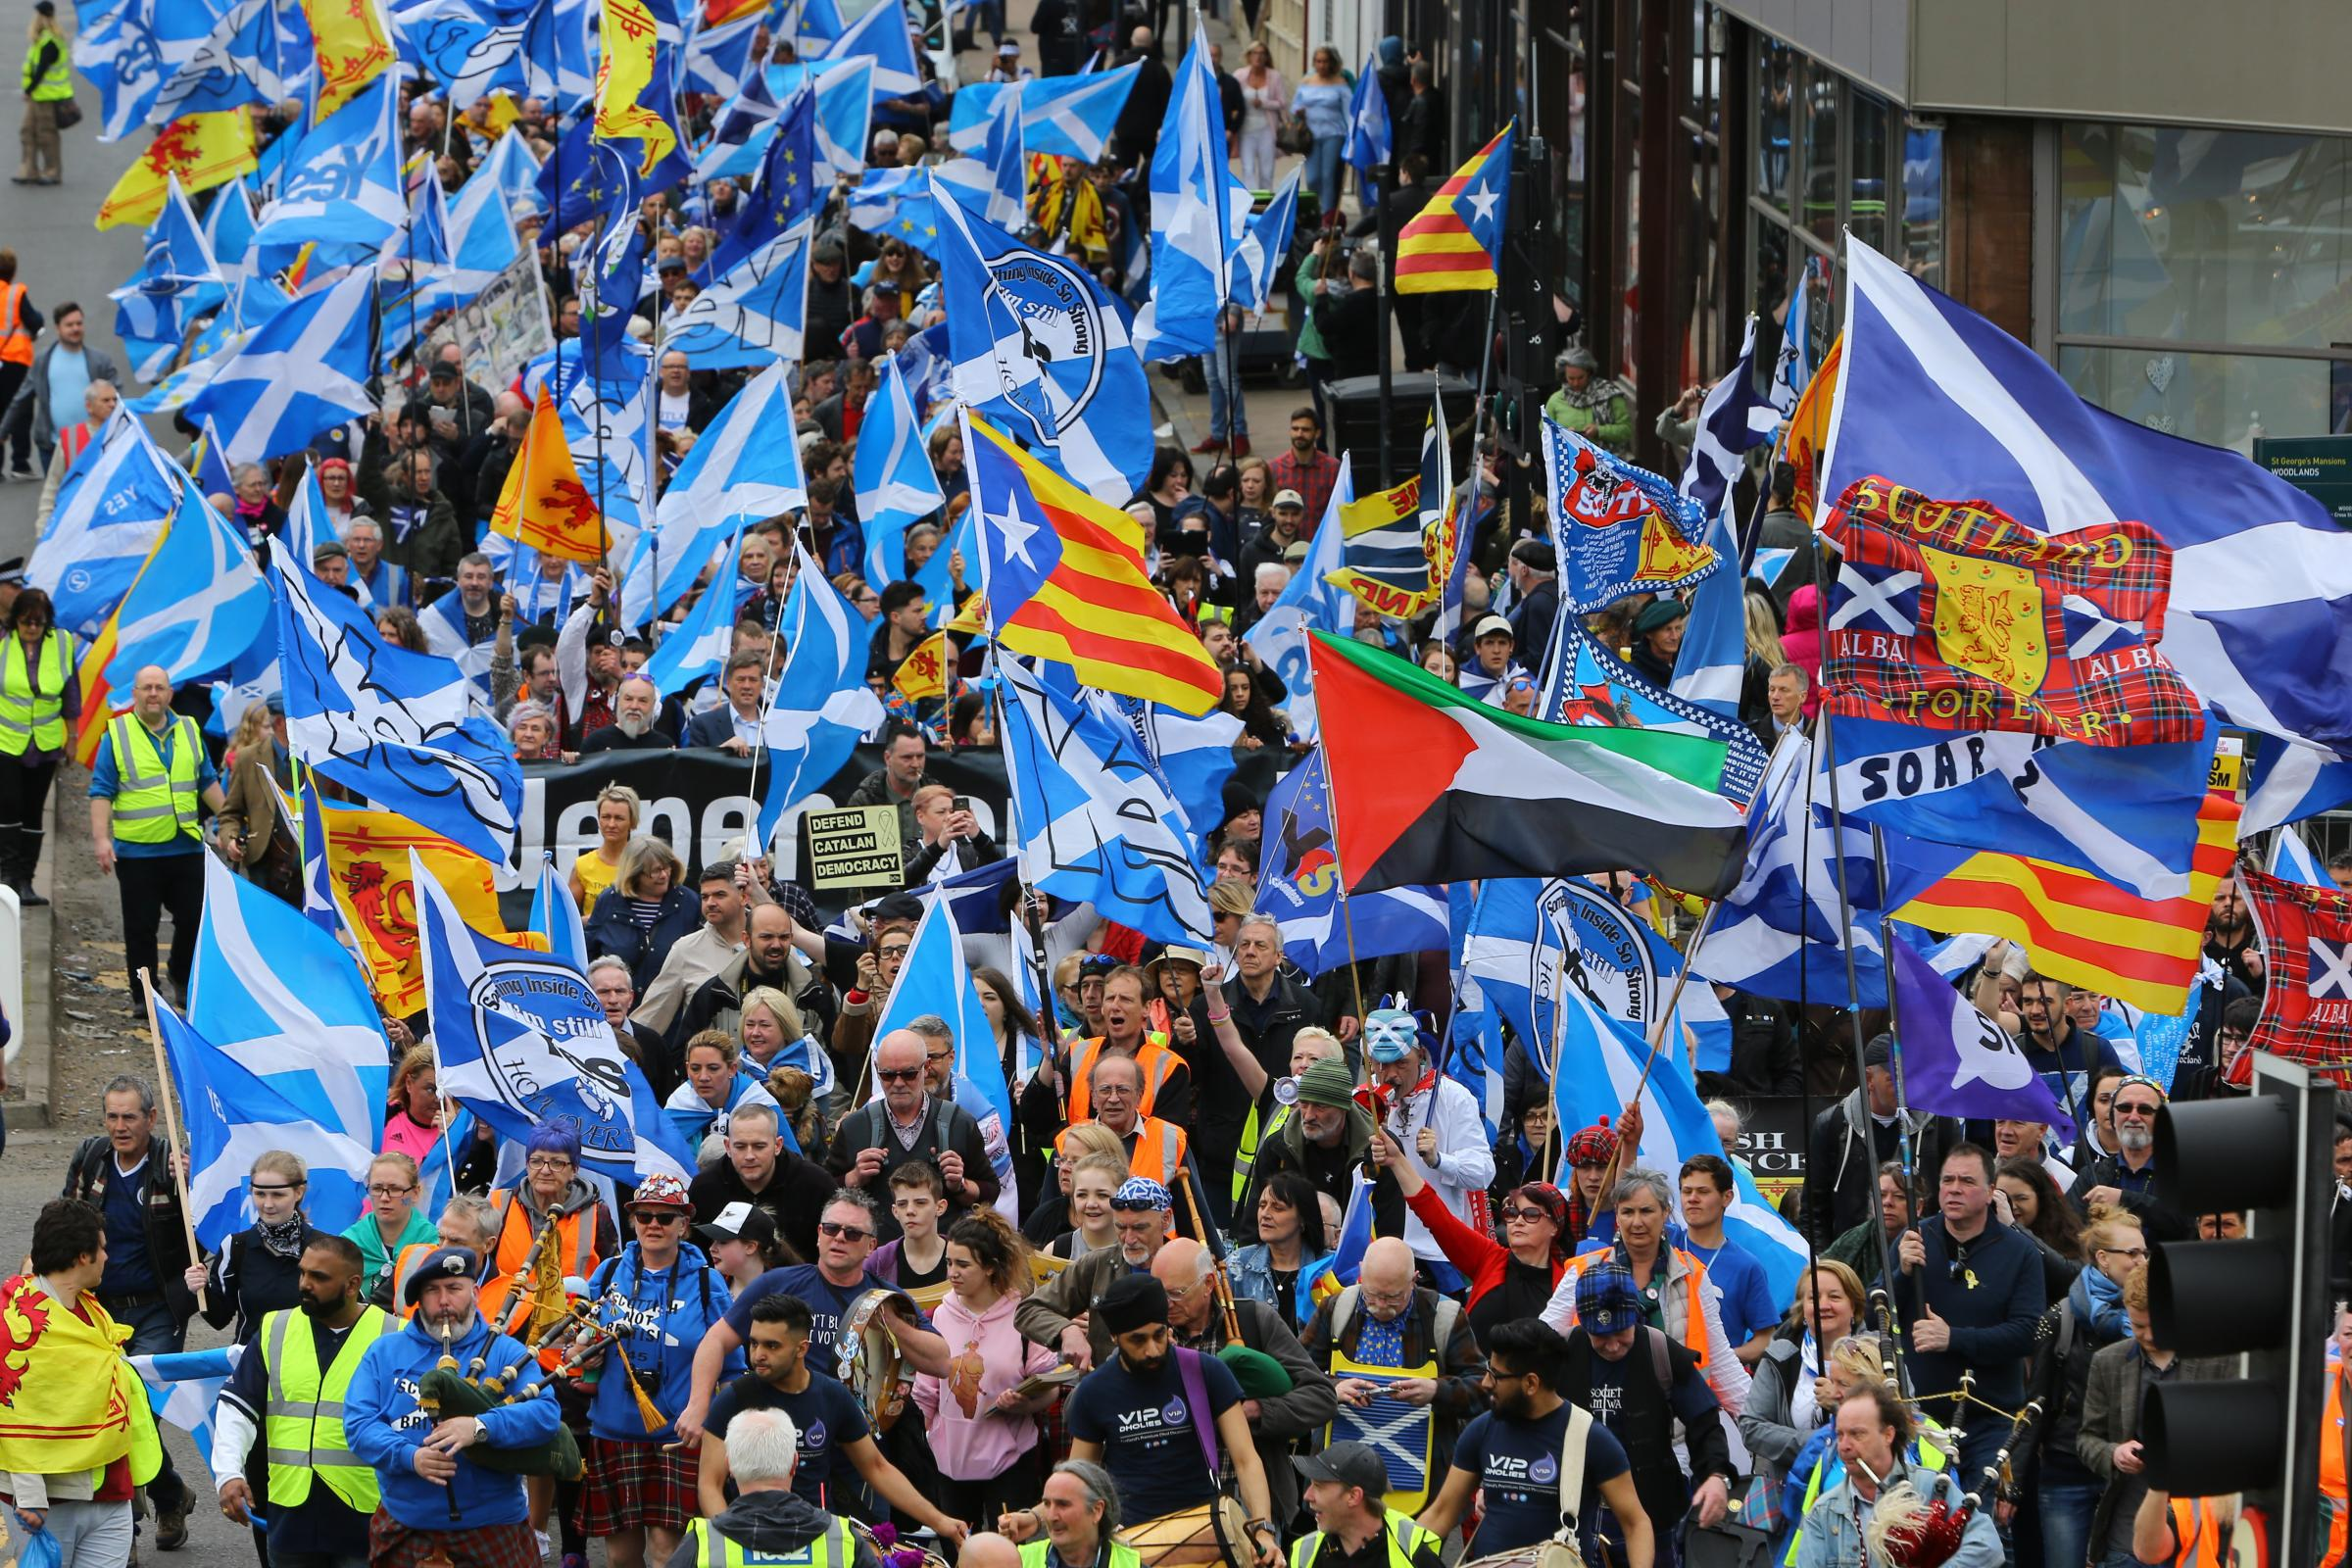 Attendance at pro-independence marches has increased by the tens of thousands